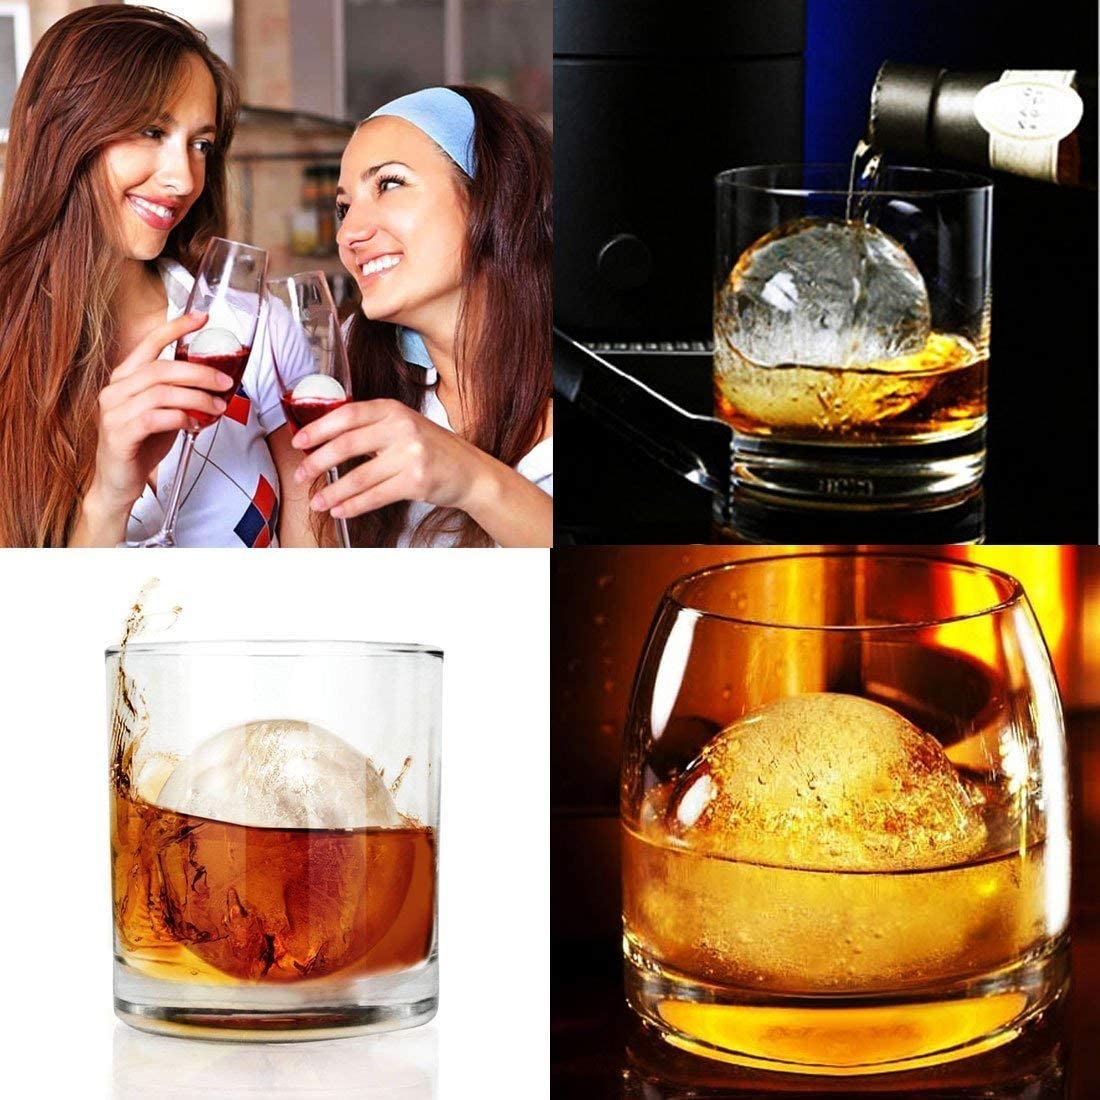 Reusable /& BPA Free Ice Cube Trays Newest Water Filling Design Large Ice Sphere Mold Tray for Whiskey Ice Ball Maker with Lids Diamond Cut Ice Ball Mold for Cocktail Bourbon /& Scotch